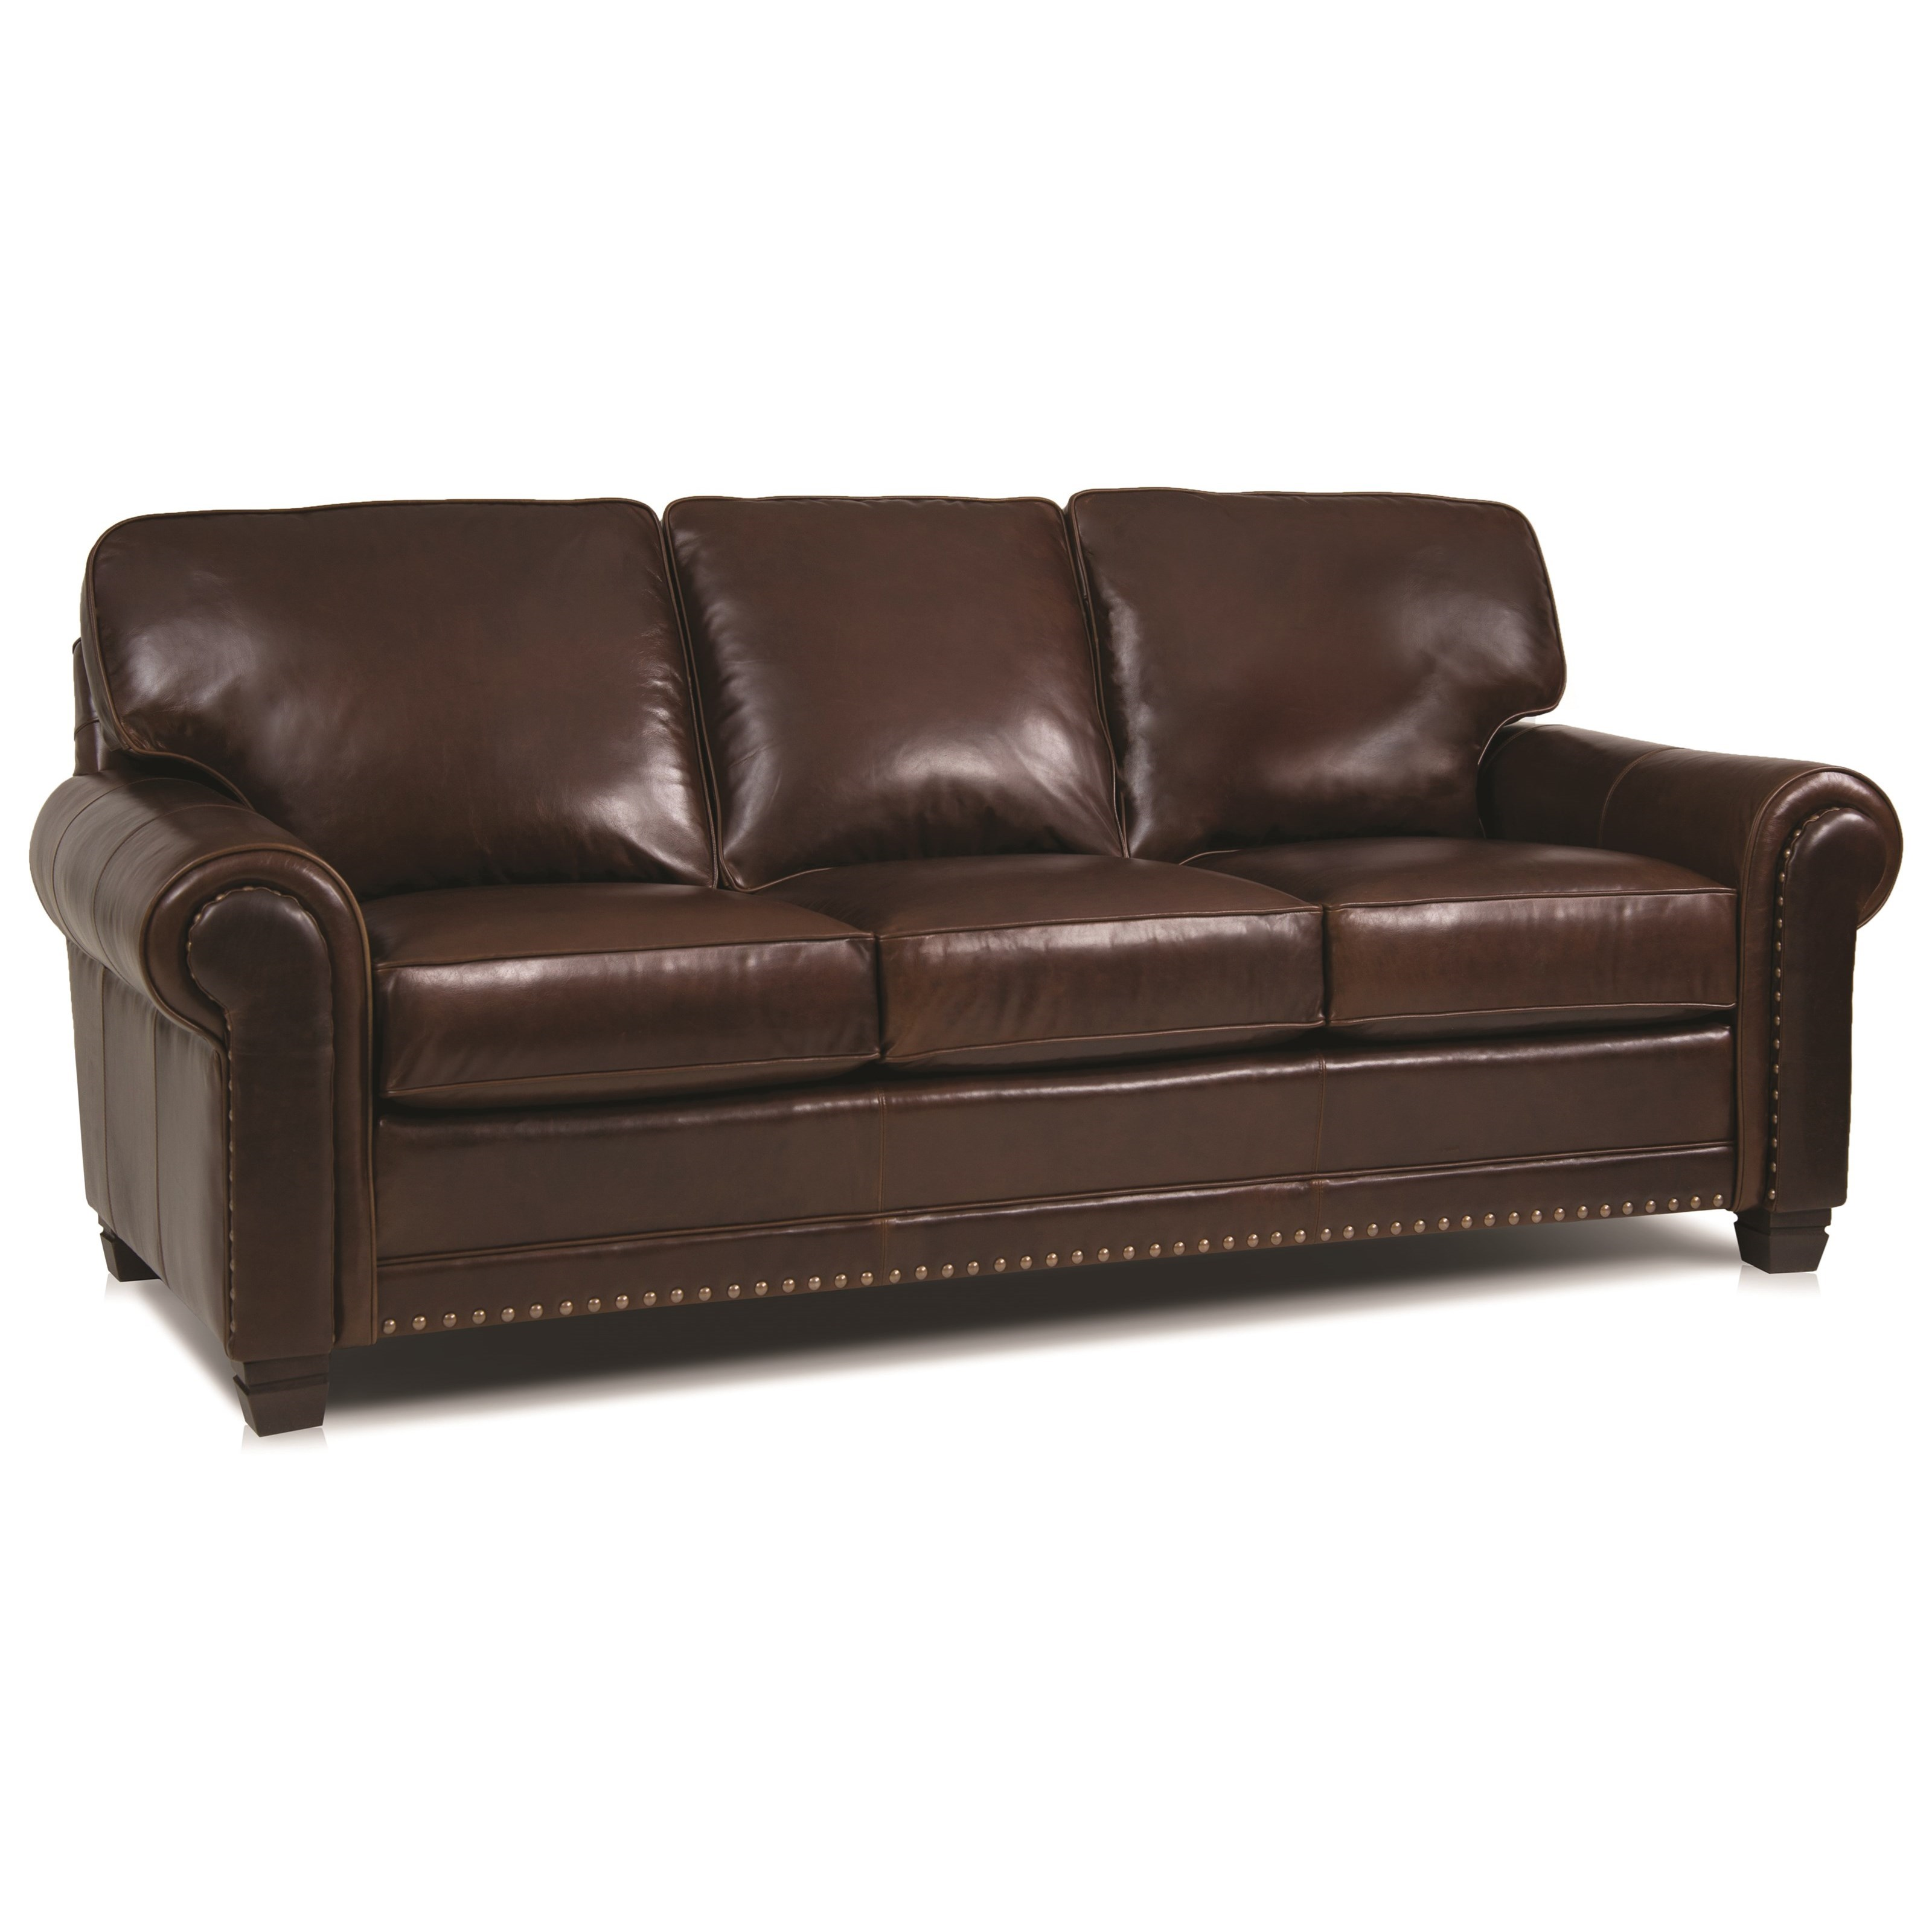 393 Traditional Stationary Sofa by Smith Brothers at Miller Home